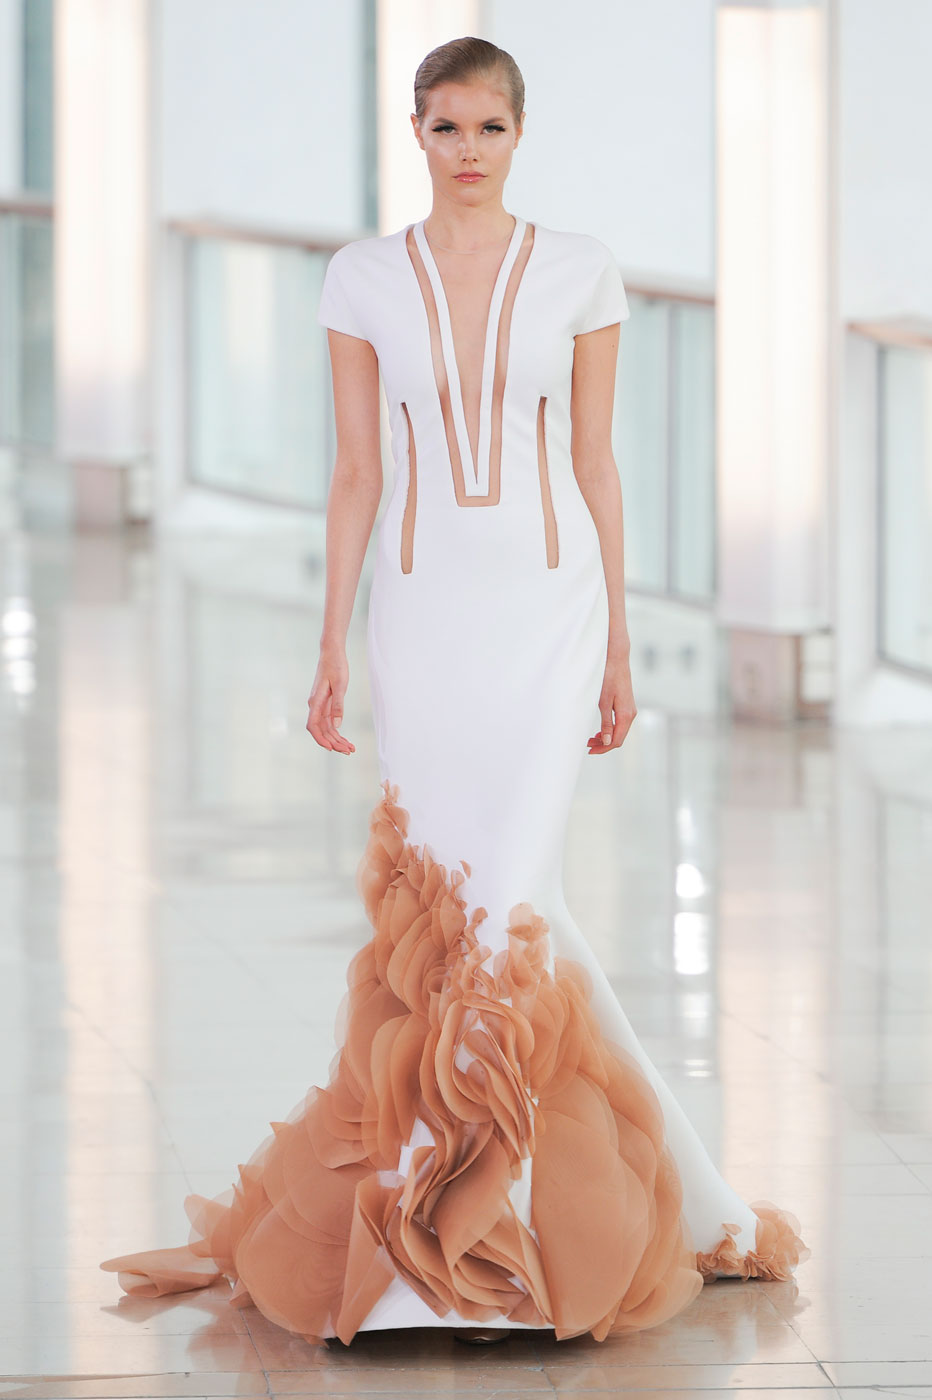 stephane-rolland-fashion-runway-show-haute-couture-paris-spring-2015-the-impression-29